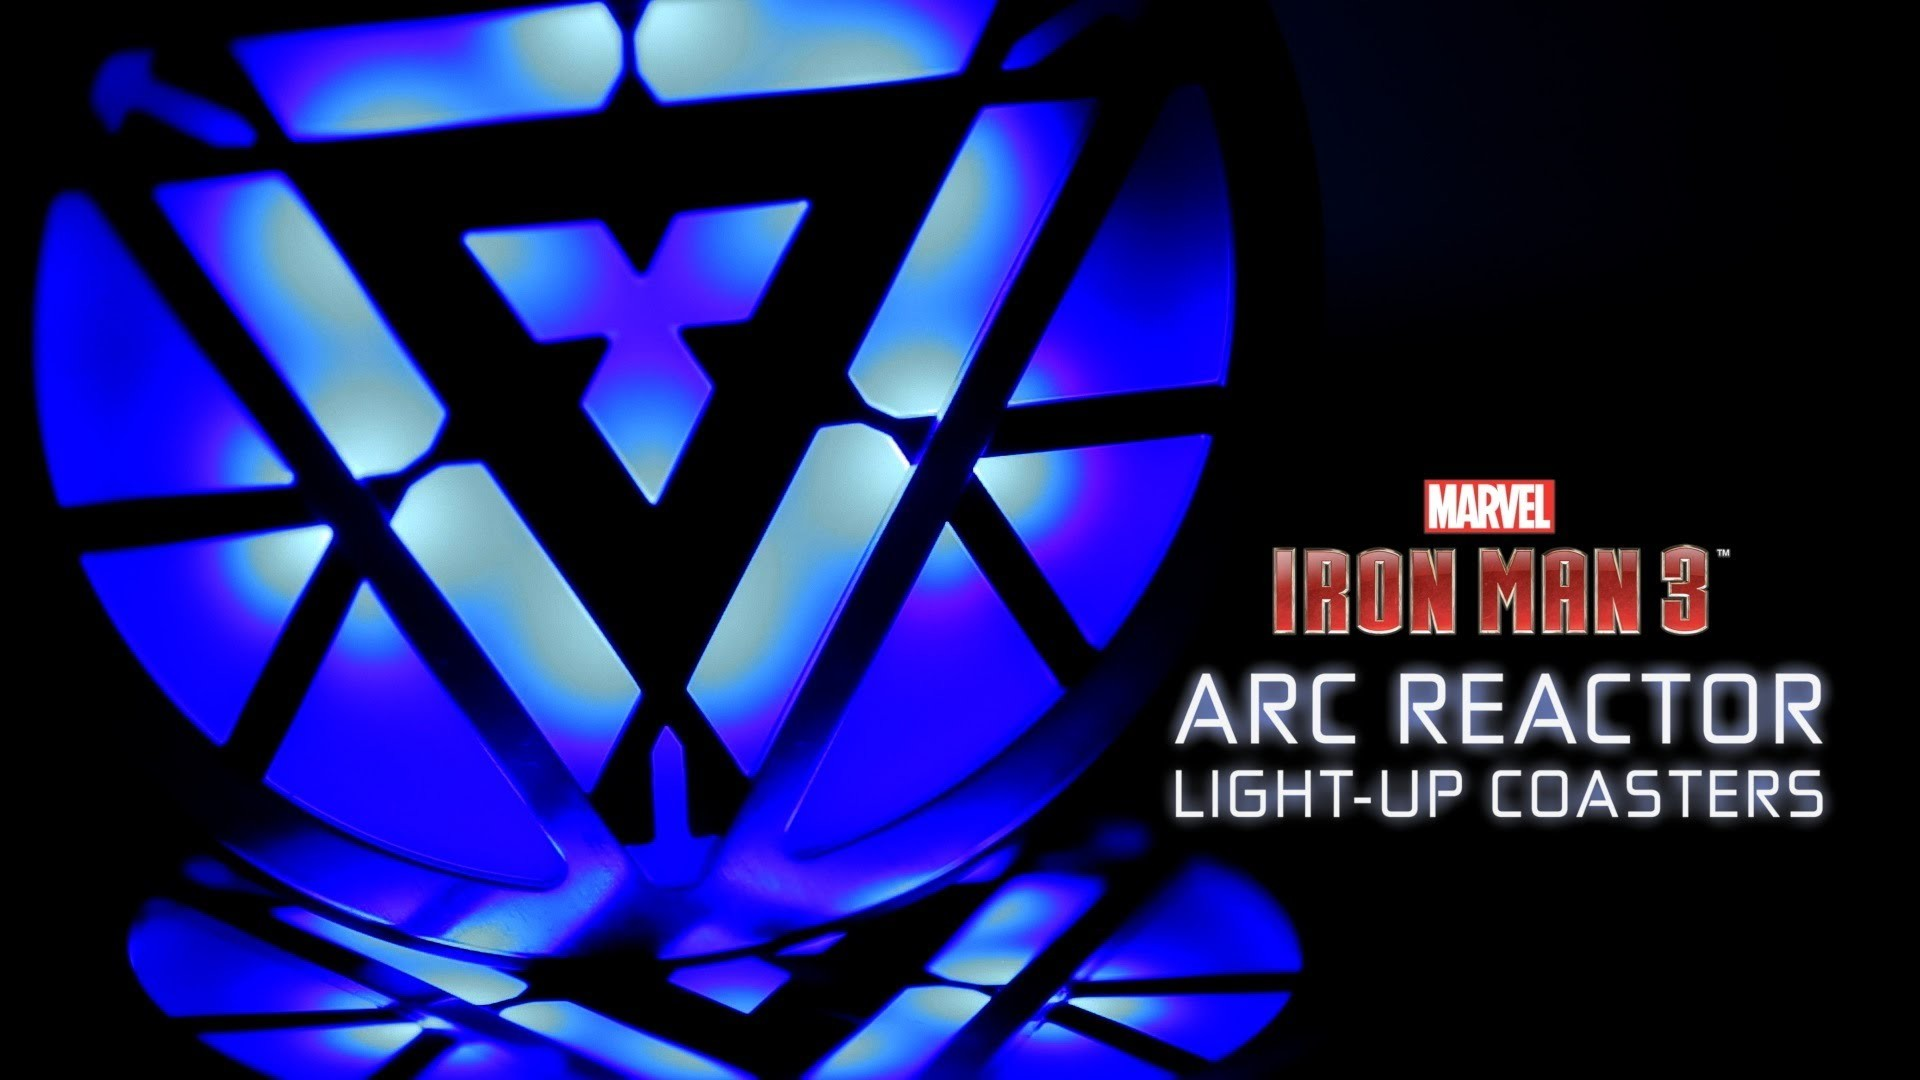 Marvel Iron Man 3 Arc Reactor Light-Up Coasters from ThinkGeek – YouTube